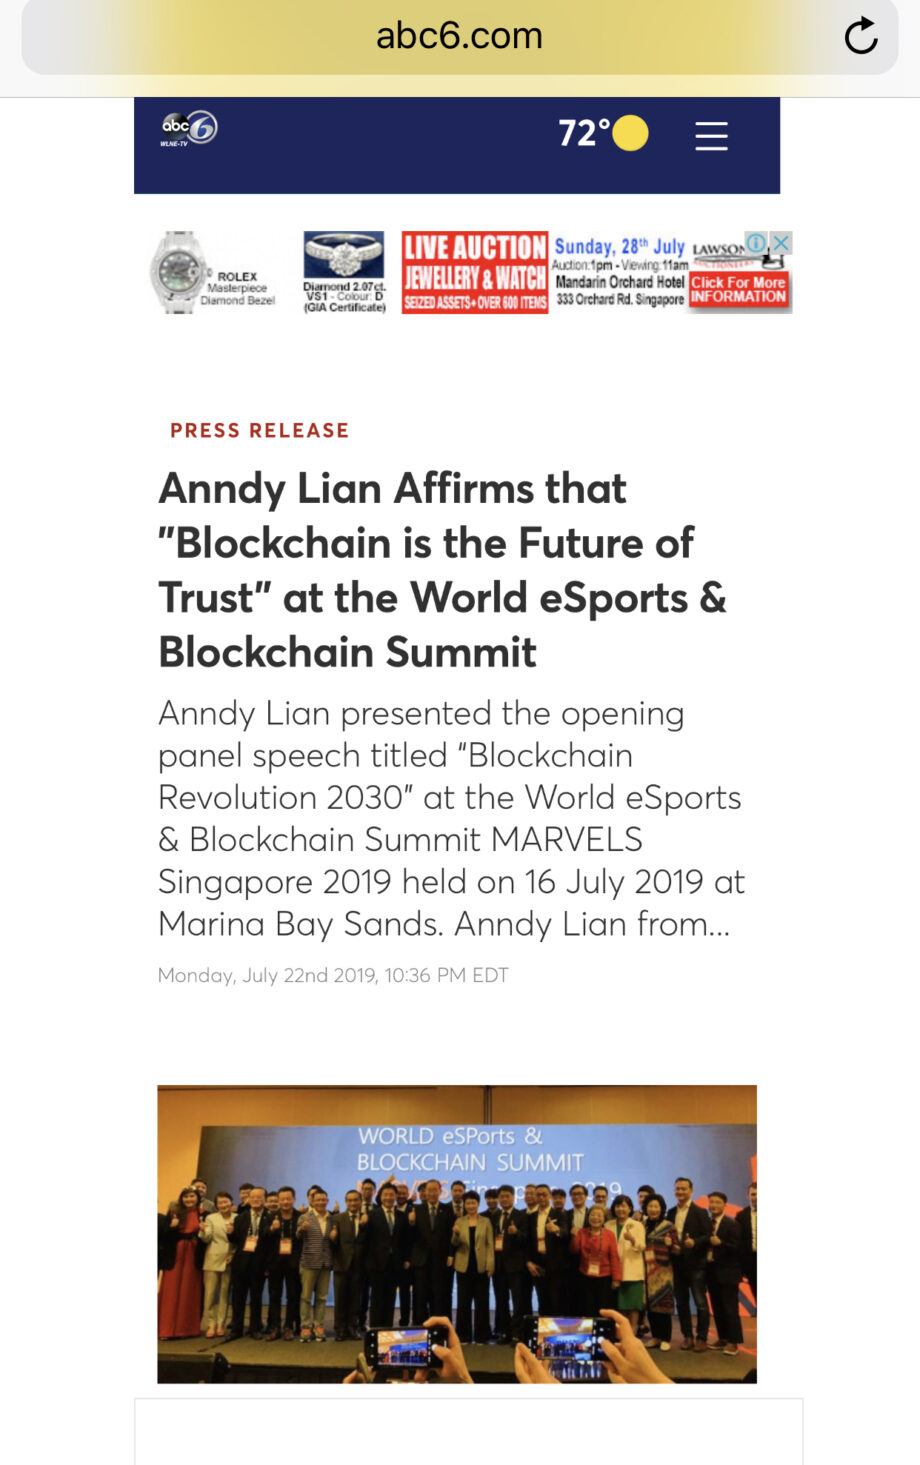 """[ABC News] Anndy Lian Affirms that """"Blockchain is the Future of Trust"""" at the World eSports & Blockchain Summit"""